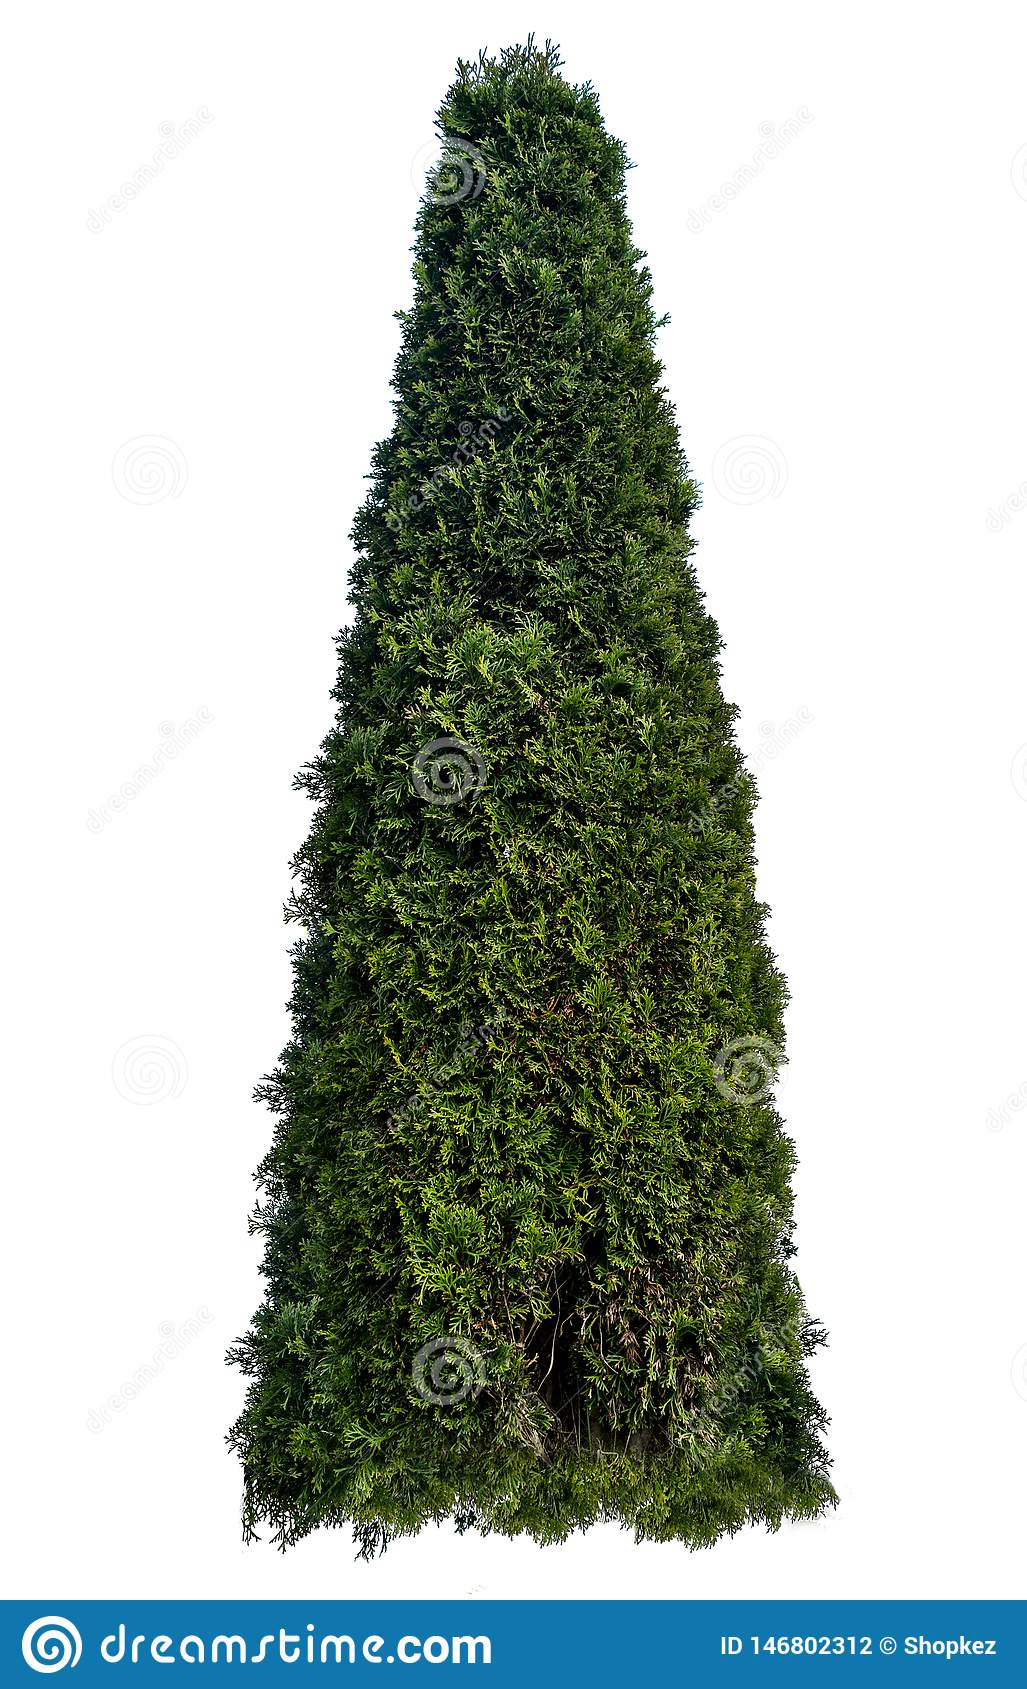 Thuja occidentalis, also known as northern white-cedar or eastern arborvitae, is an evergreen coniferous tree, in the cypress